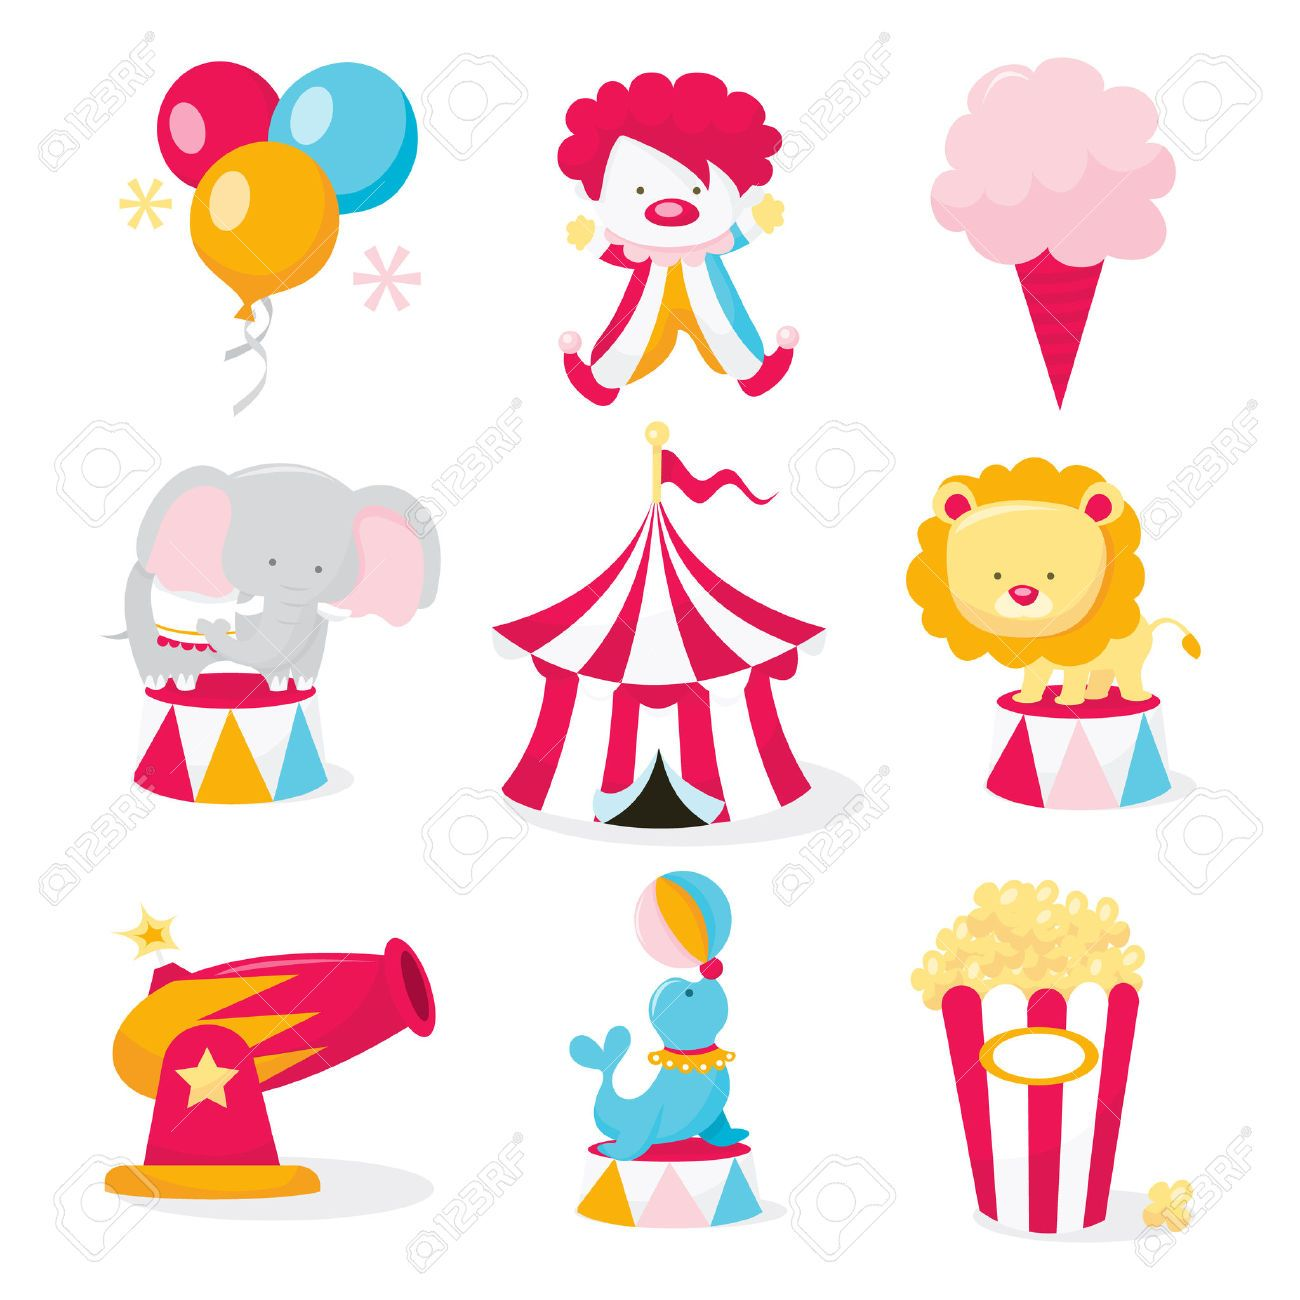 A Vector Illustration Set Of Cute Circus Theme Clip Arts Like Tent Animals